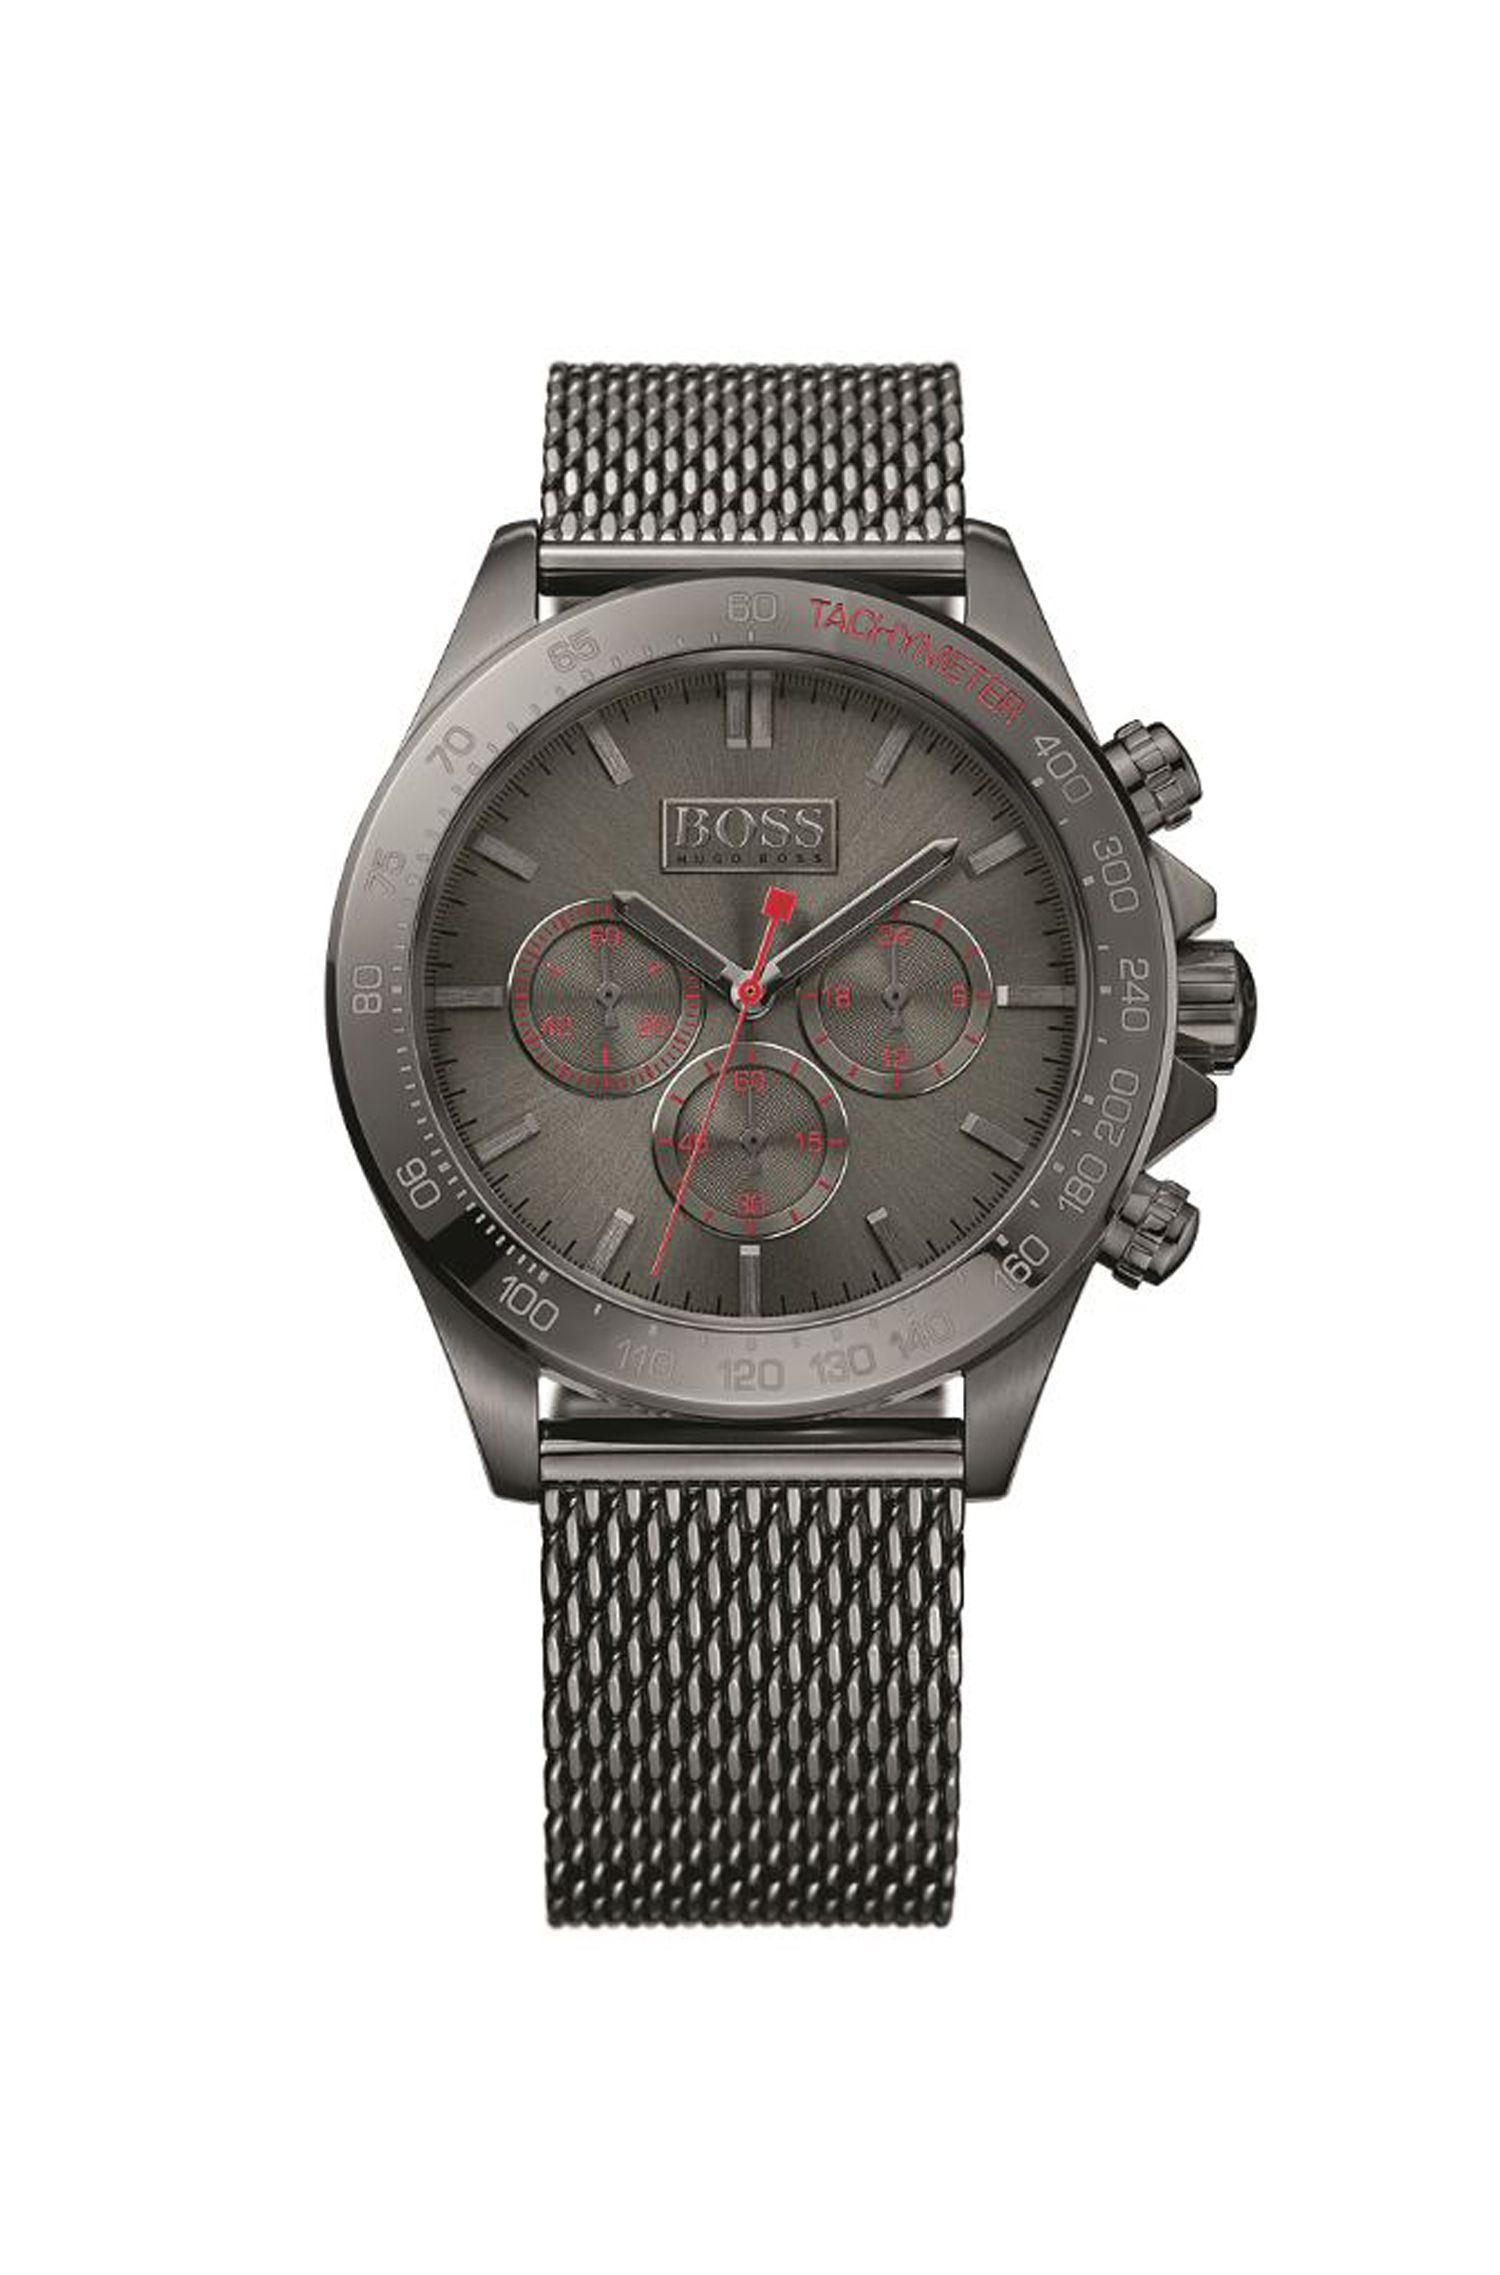 Ikon, Stainless Steel Chronograph Watch | 1513443